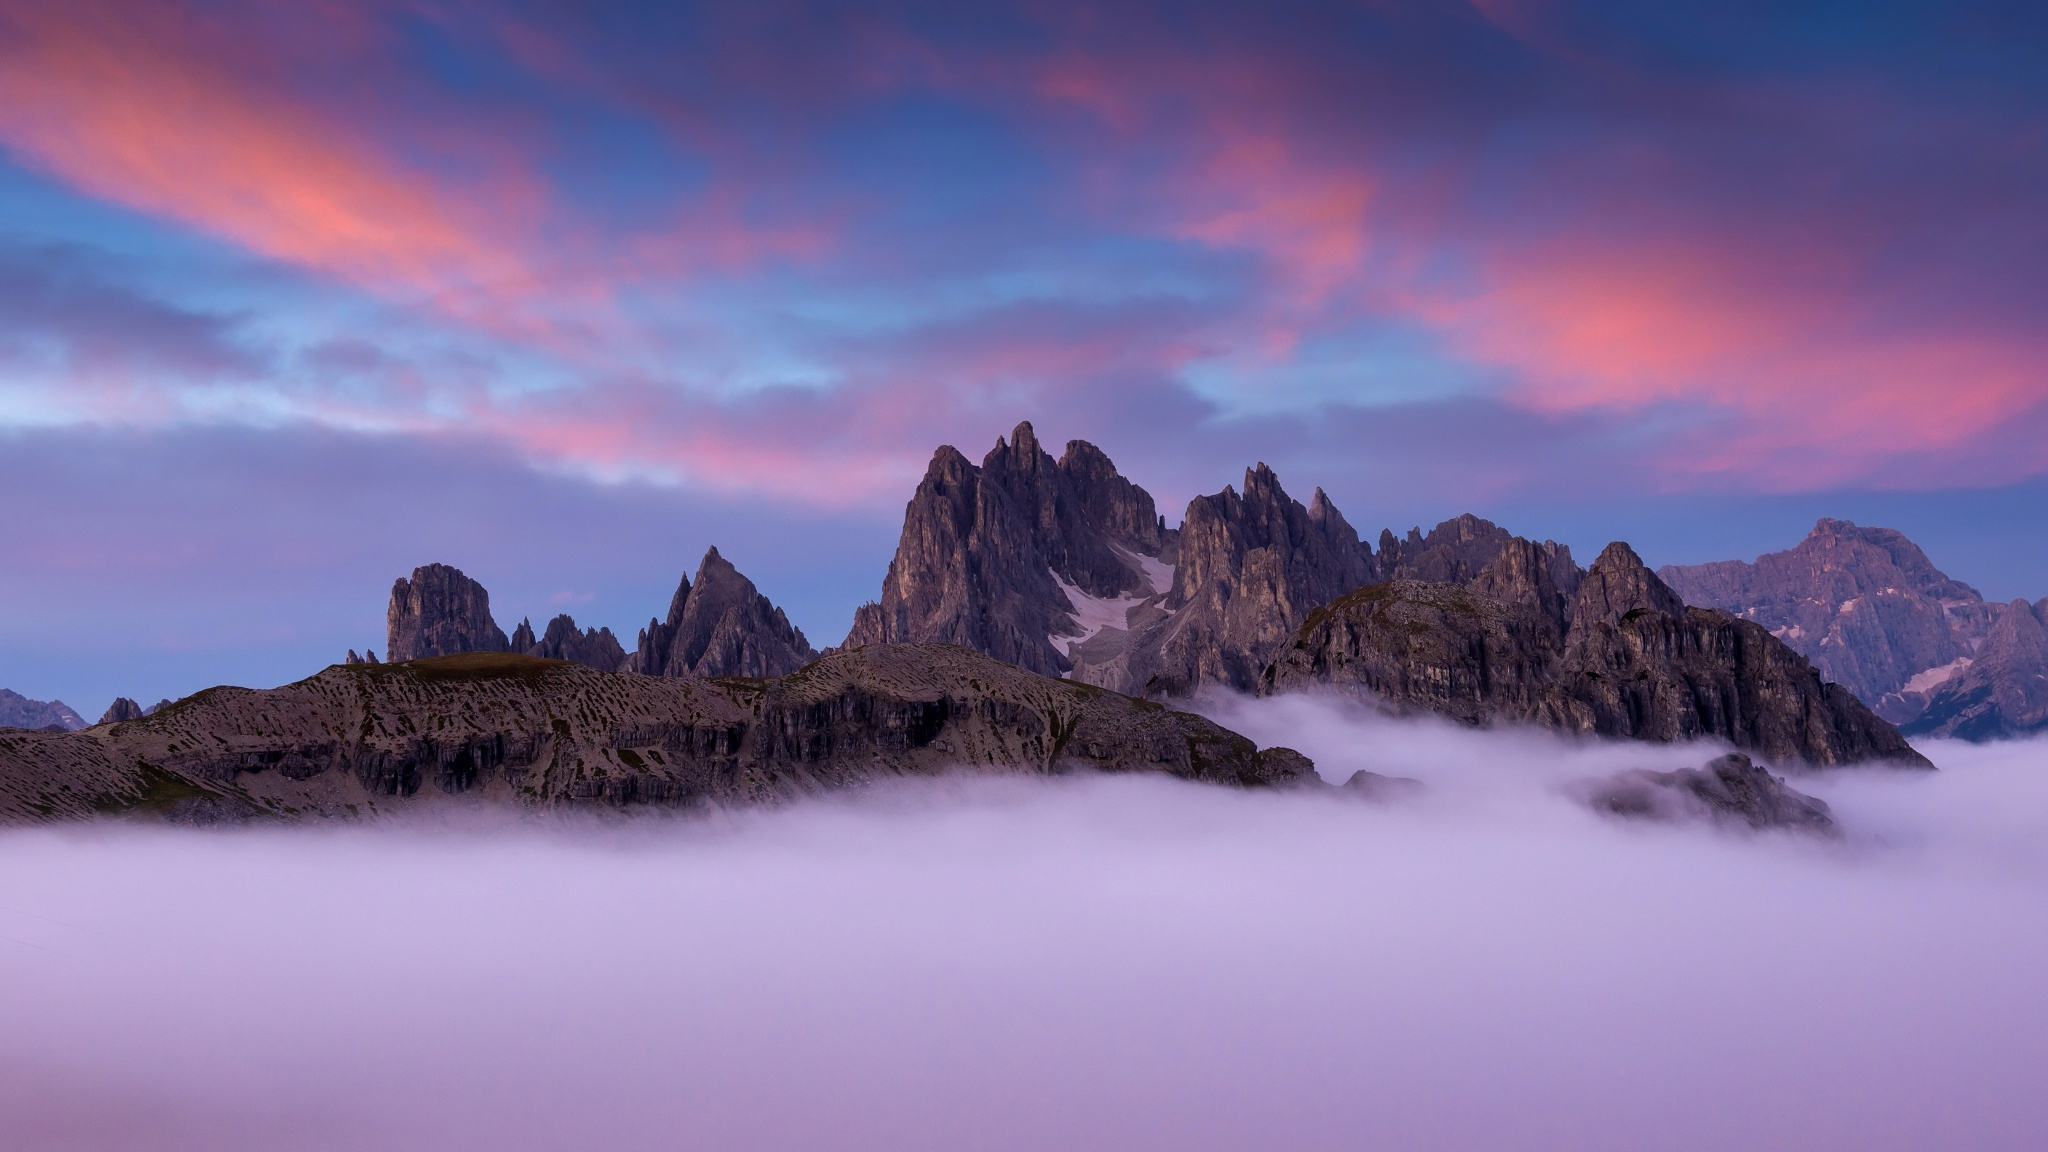 Pink Full Hd Wallpaper Fog And Sunset Over Dolomite Mountains In Italy Full Hd